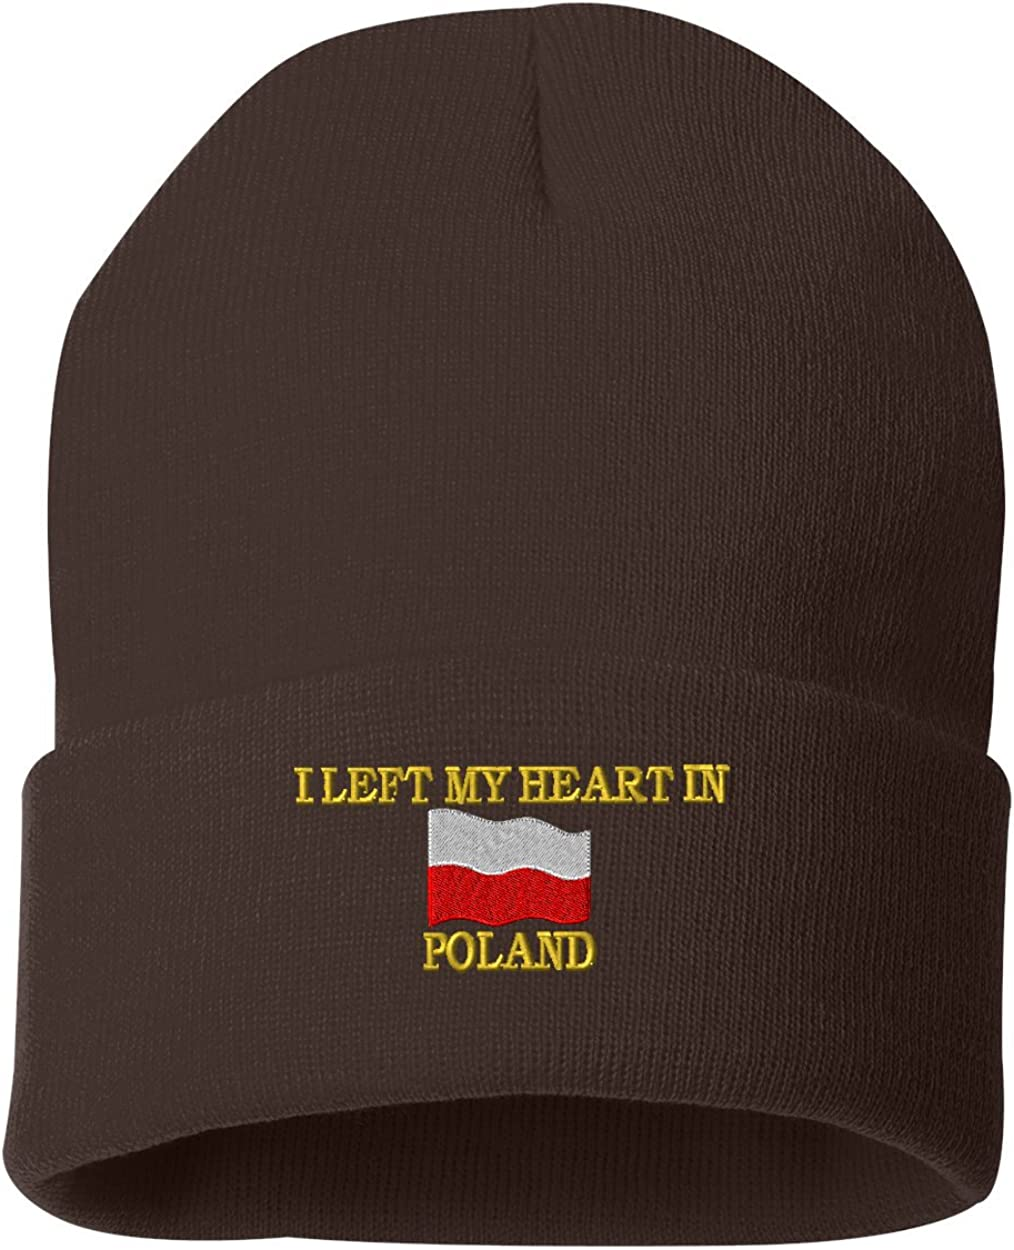 I LEFT MY HEART IN POLAND Custom Personalized Embroidery Embroidered Beanie